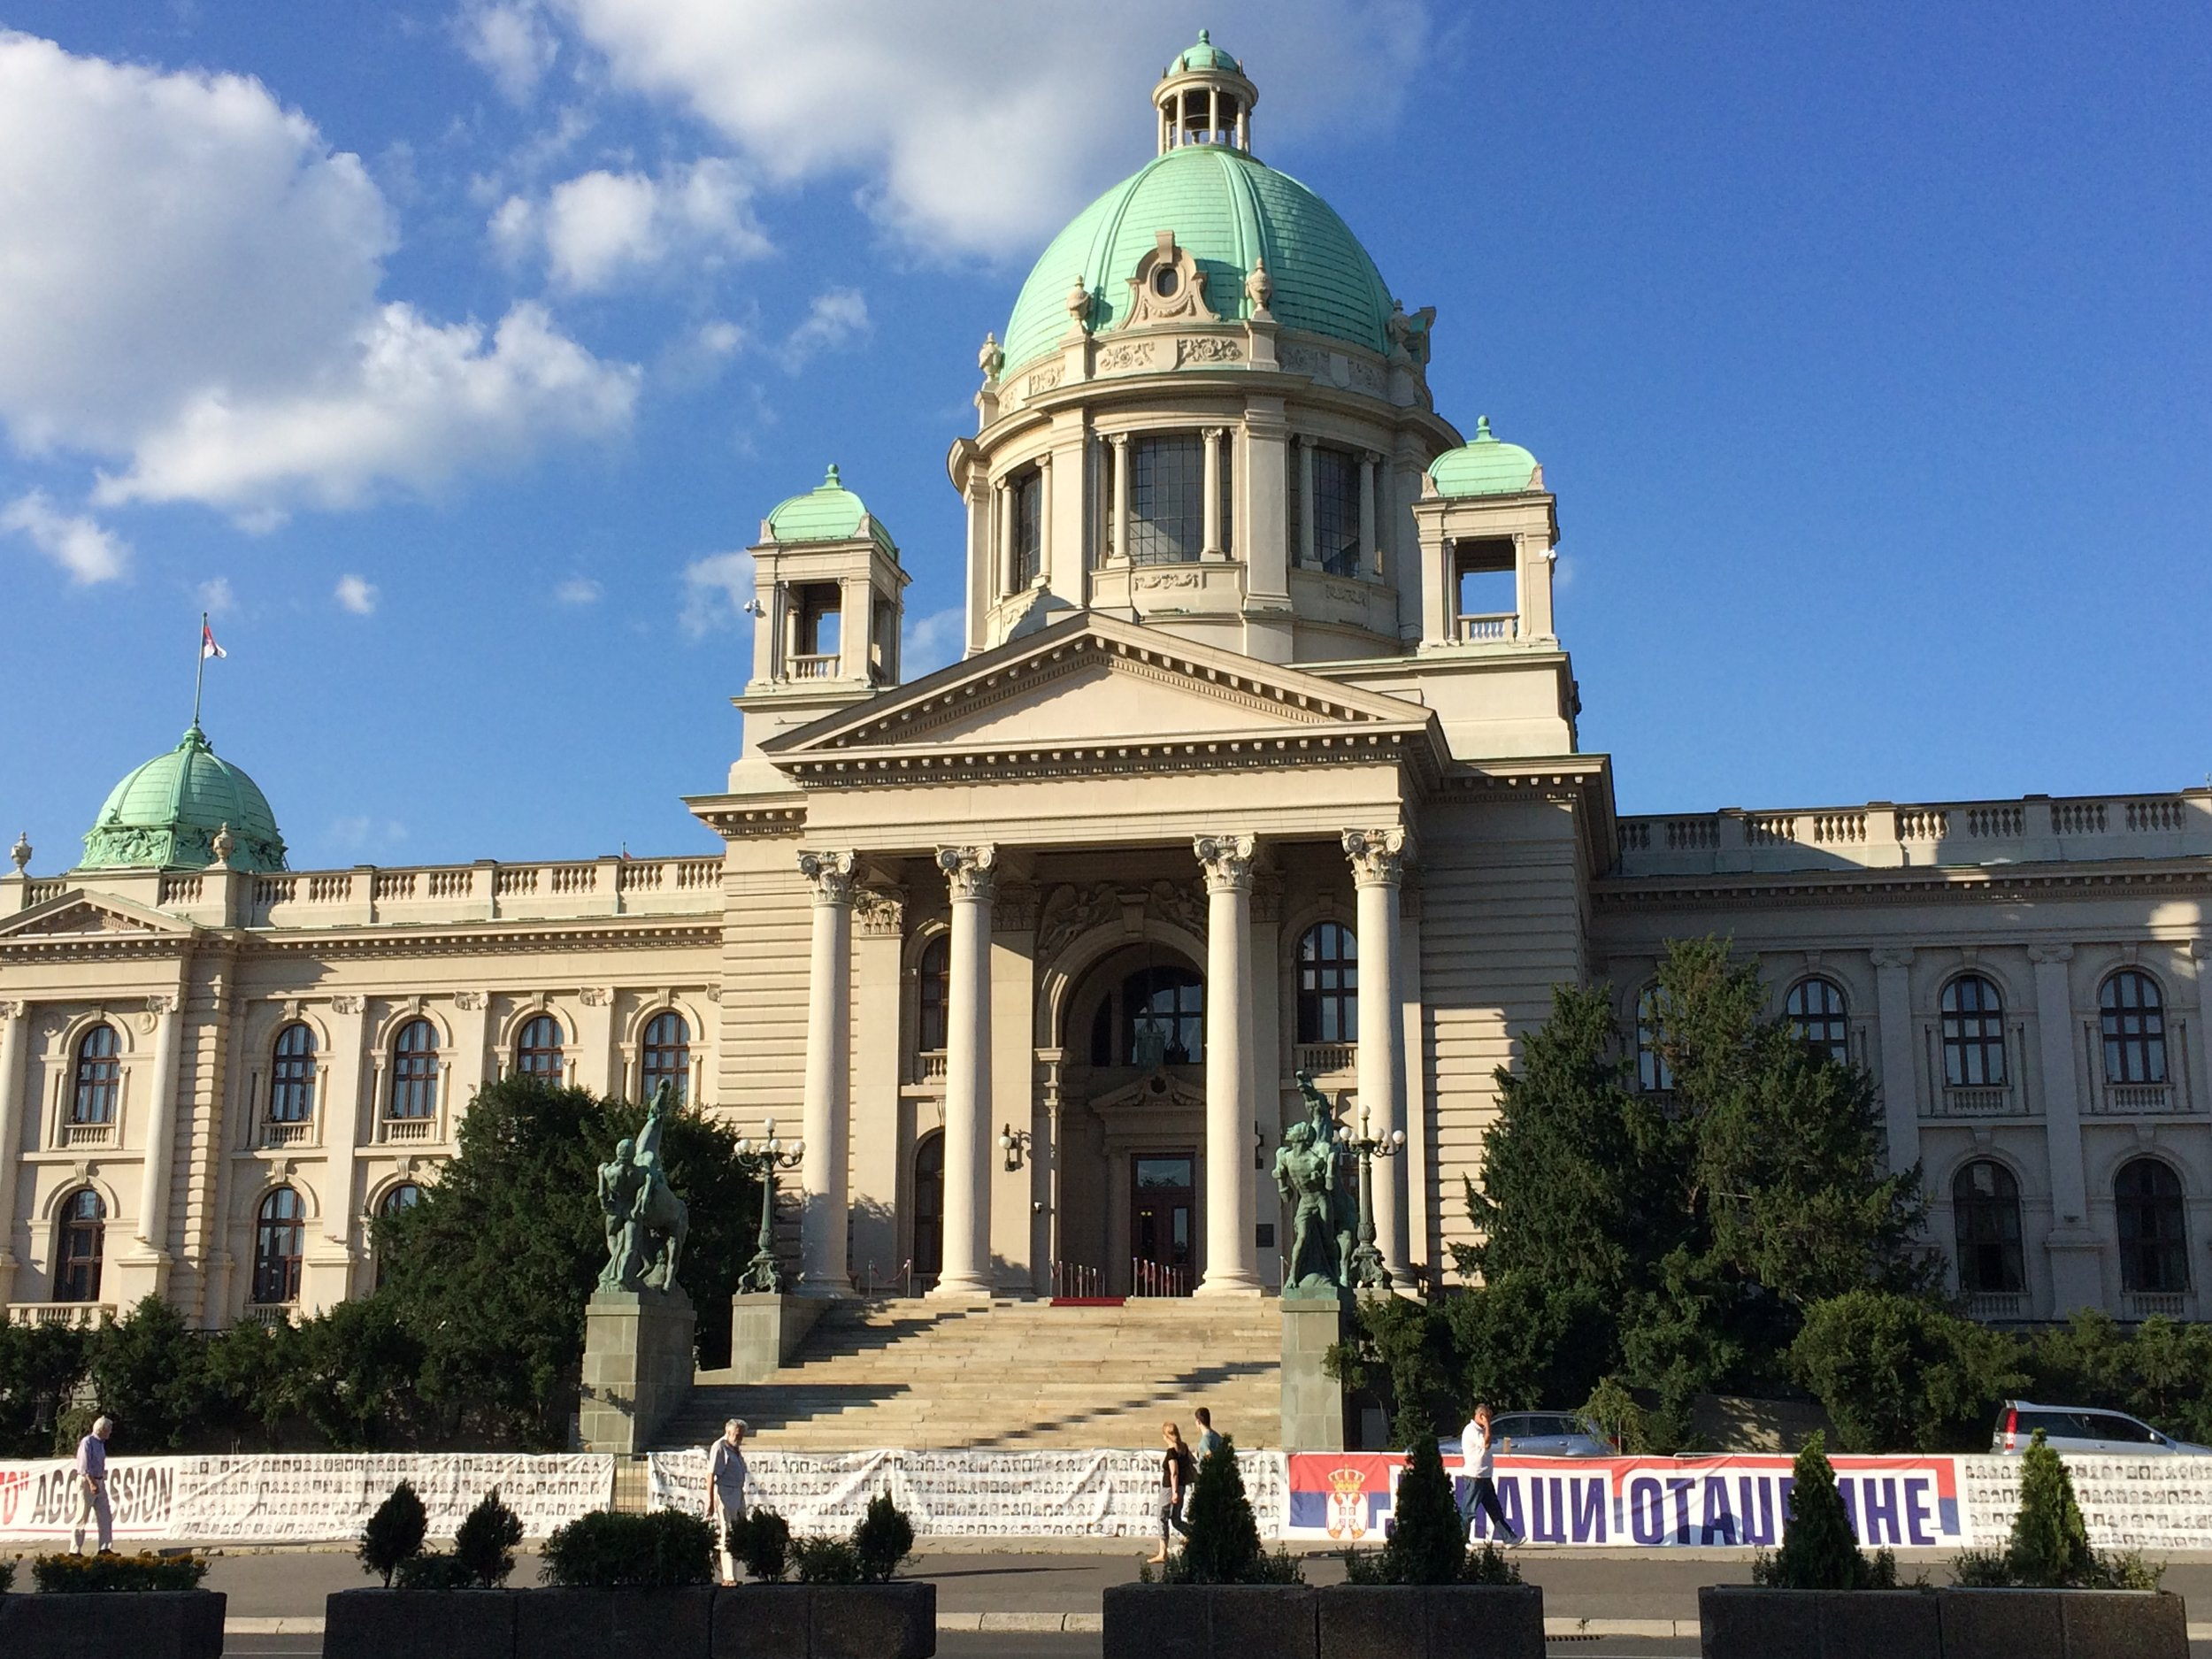 Government building. Signs outside are protests of Albanian 'terrorists'